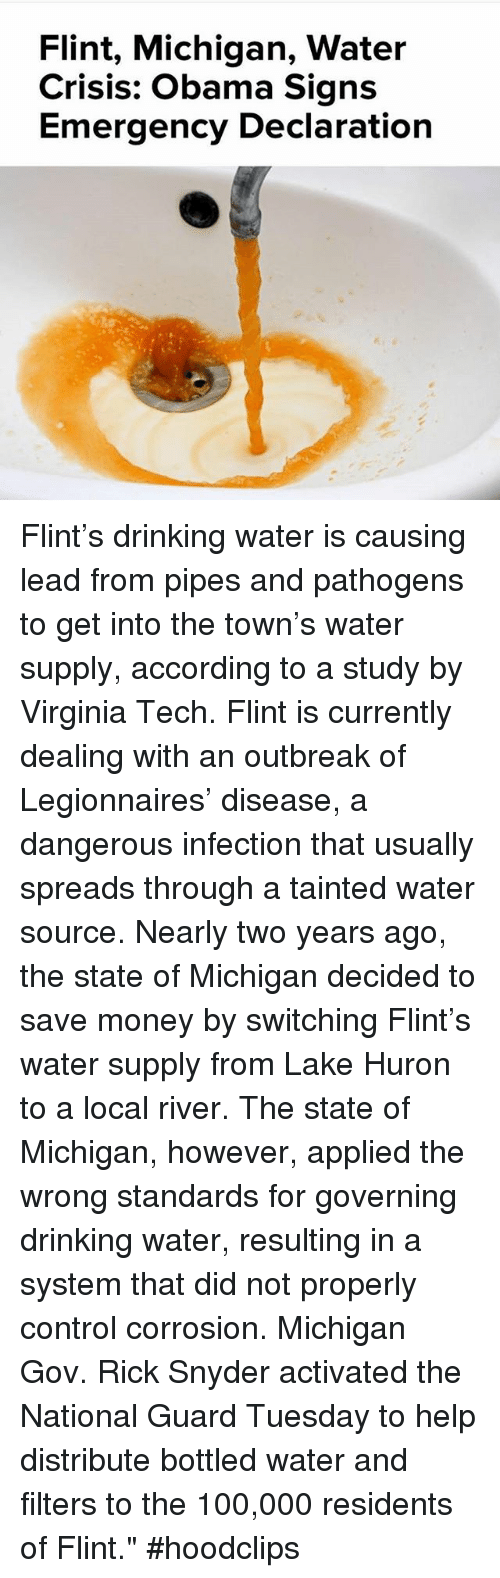 """Virginia Tech: Flint, Michigan, Water  Crisis: Obama Signs  Emergency Declaration Flint's drinking water is causing lead from pipes and pathogens to get into the town's water supply, according to a study by Virginia Tech. Flint is currently dealing with an outbreak of Legionnaires' disease, a dangerous infection that usually spreads through a tainted water source.-Nearly two years ago, the state of Michigan decided to save money by switching Flint's water supply from Lake Huron to a local river. The state of Michigan, however, applied the wrong standards for governing drinking water, resulting in a system that did not properly control corrosion. Michigan Gov. Rick Snyder activated the National Guard Tuesday to help distribute bottled water and filters to the 100,000 residents of Flint.""""hoodclips"""